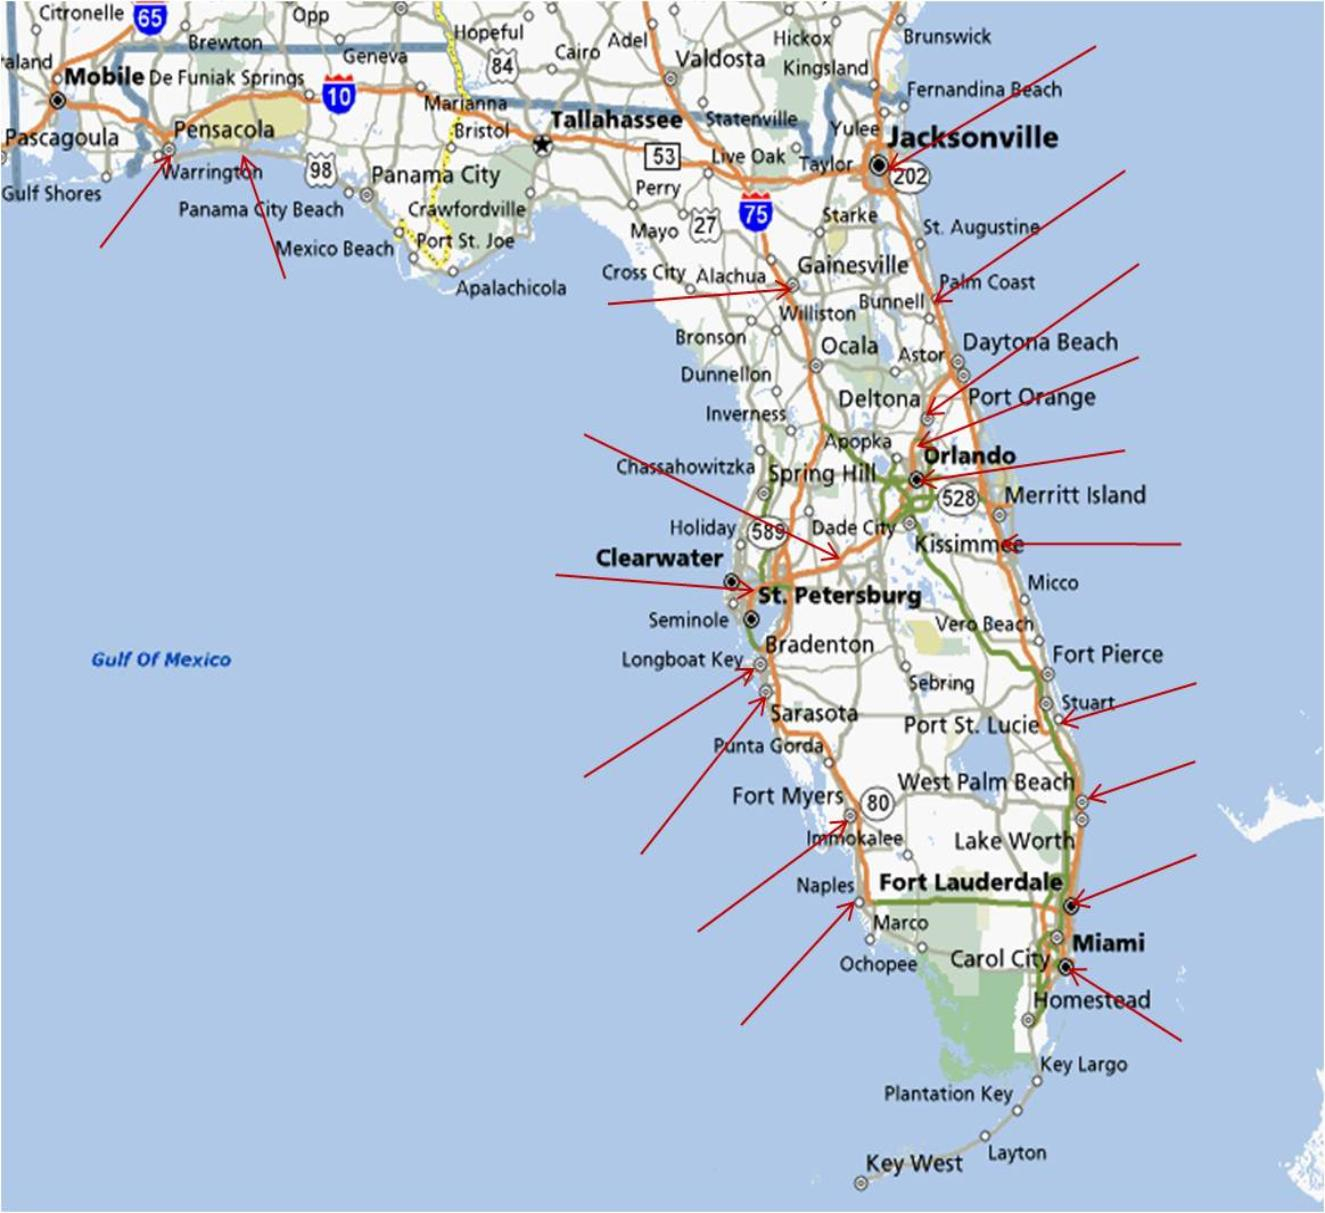 Map Of Florida Running Stores - Naples Florida Beaches Map